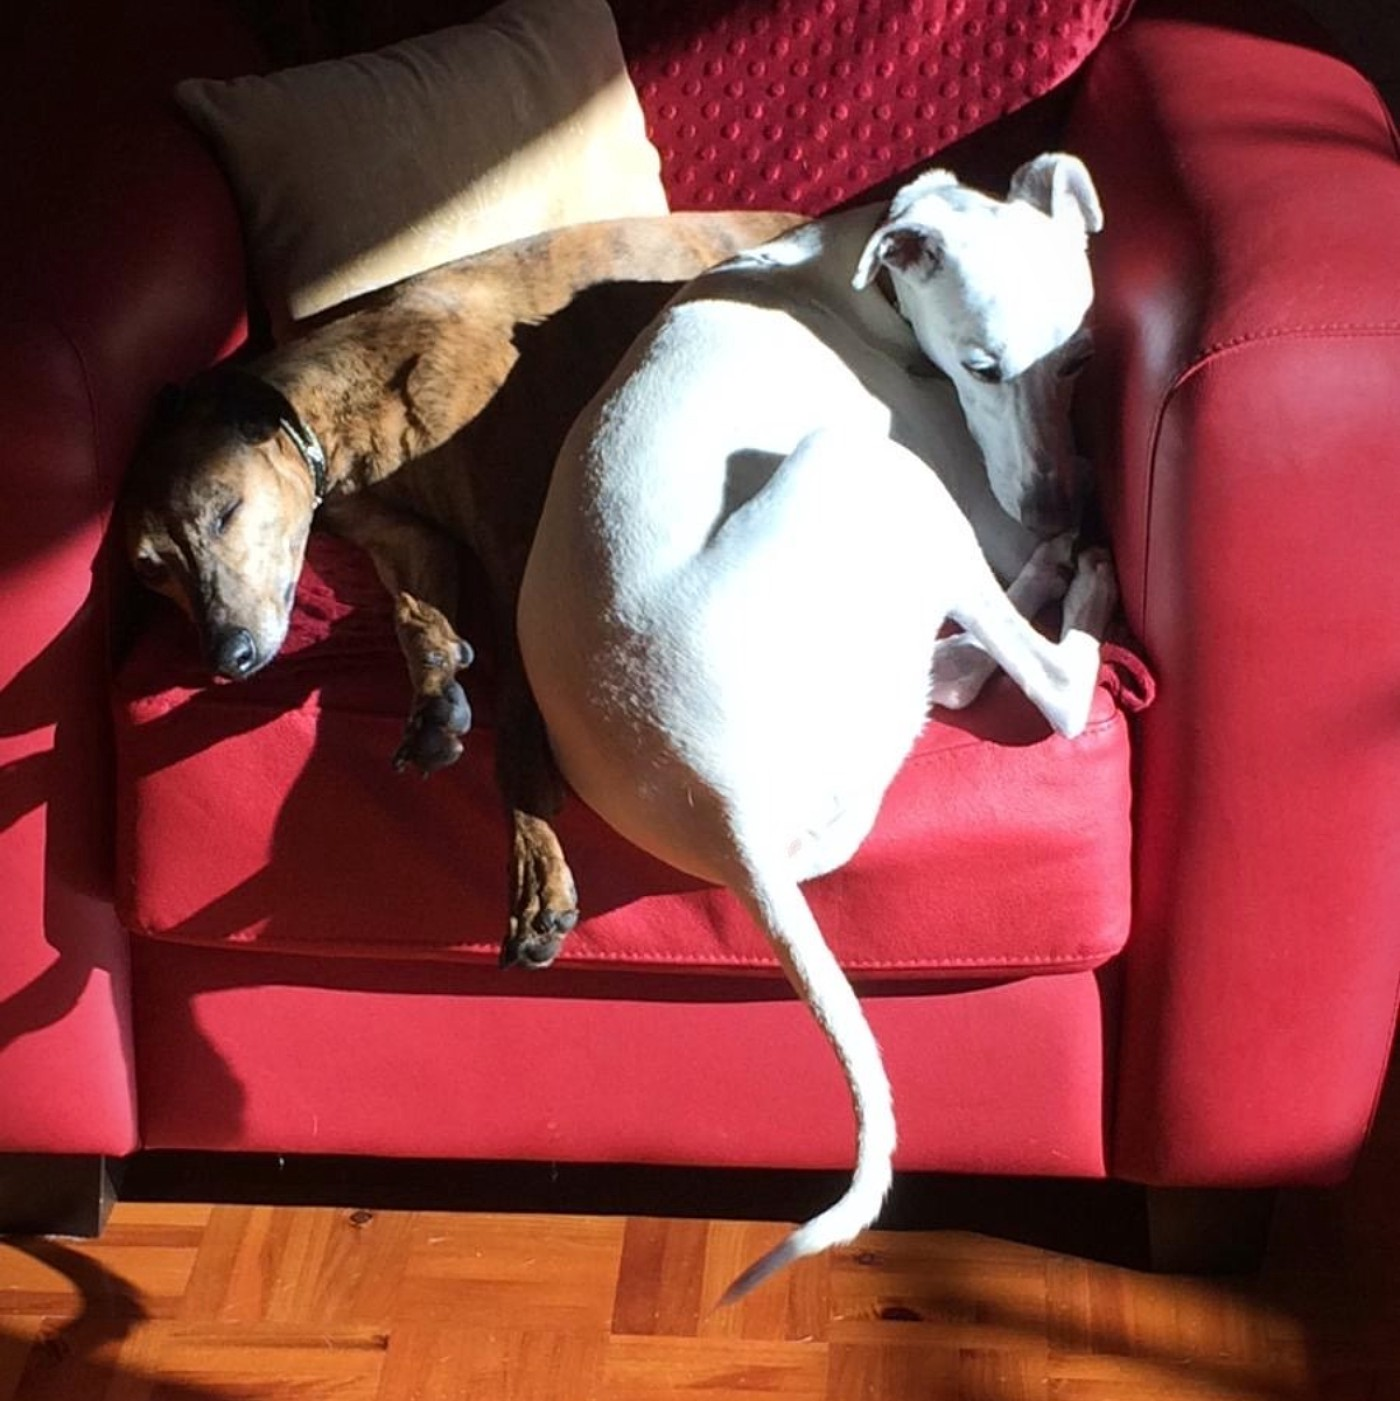 A brown whippet and a white whippet sleeping together on a red leather armchair dappled in sunshine.